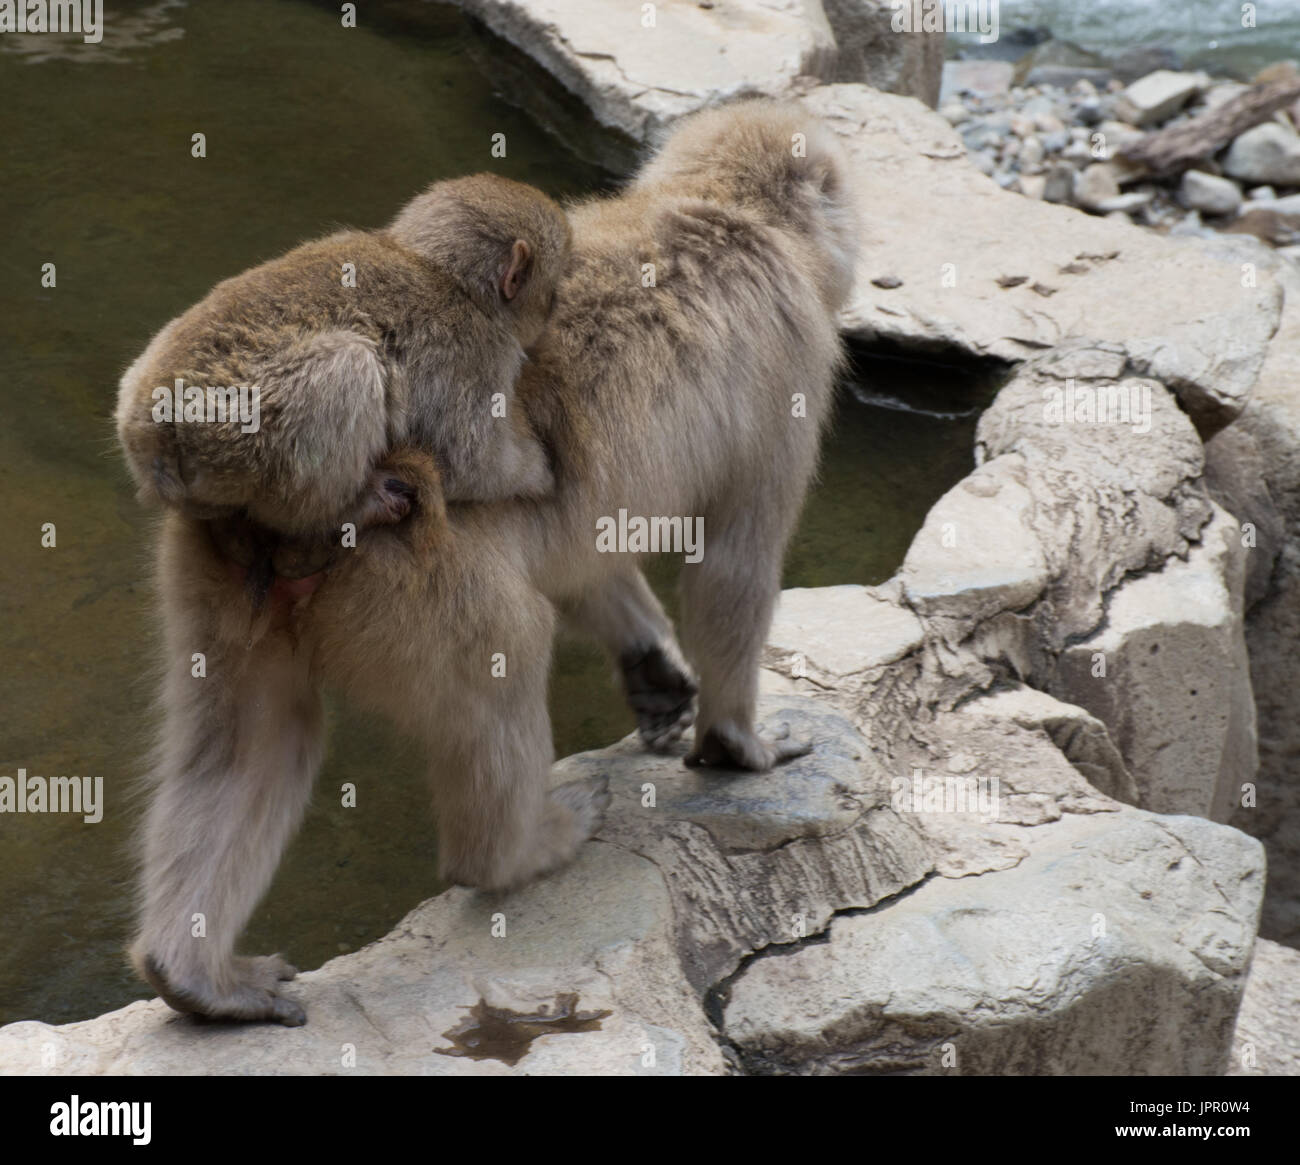 Close up of a baby snow monkey riding on its Japanese macaque mother's back at the edge of a hot spring. - Stock Image